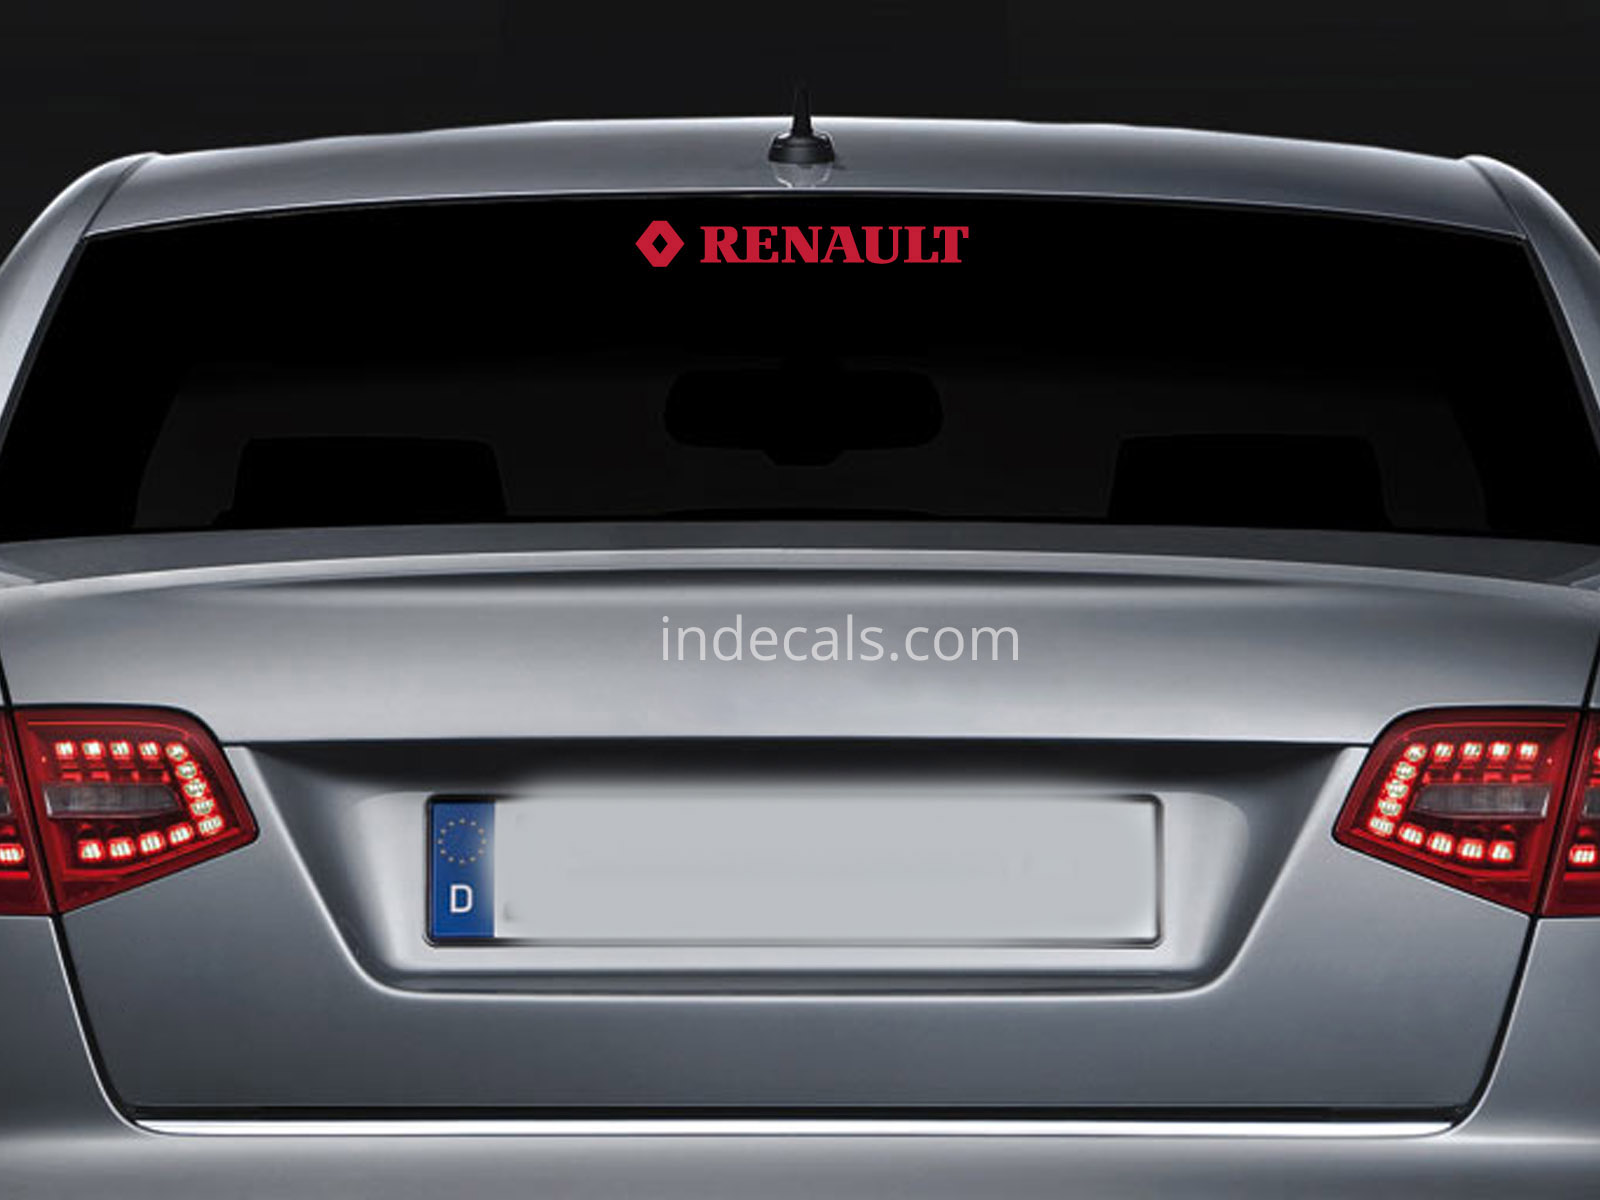 1 x Renault Sticker for Windshield or Back Window - Red